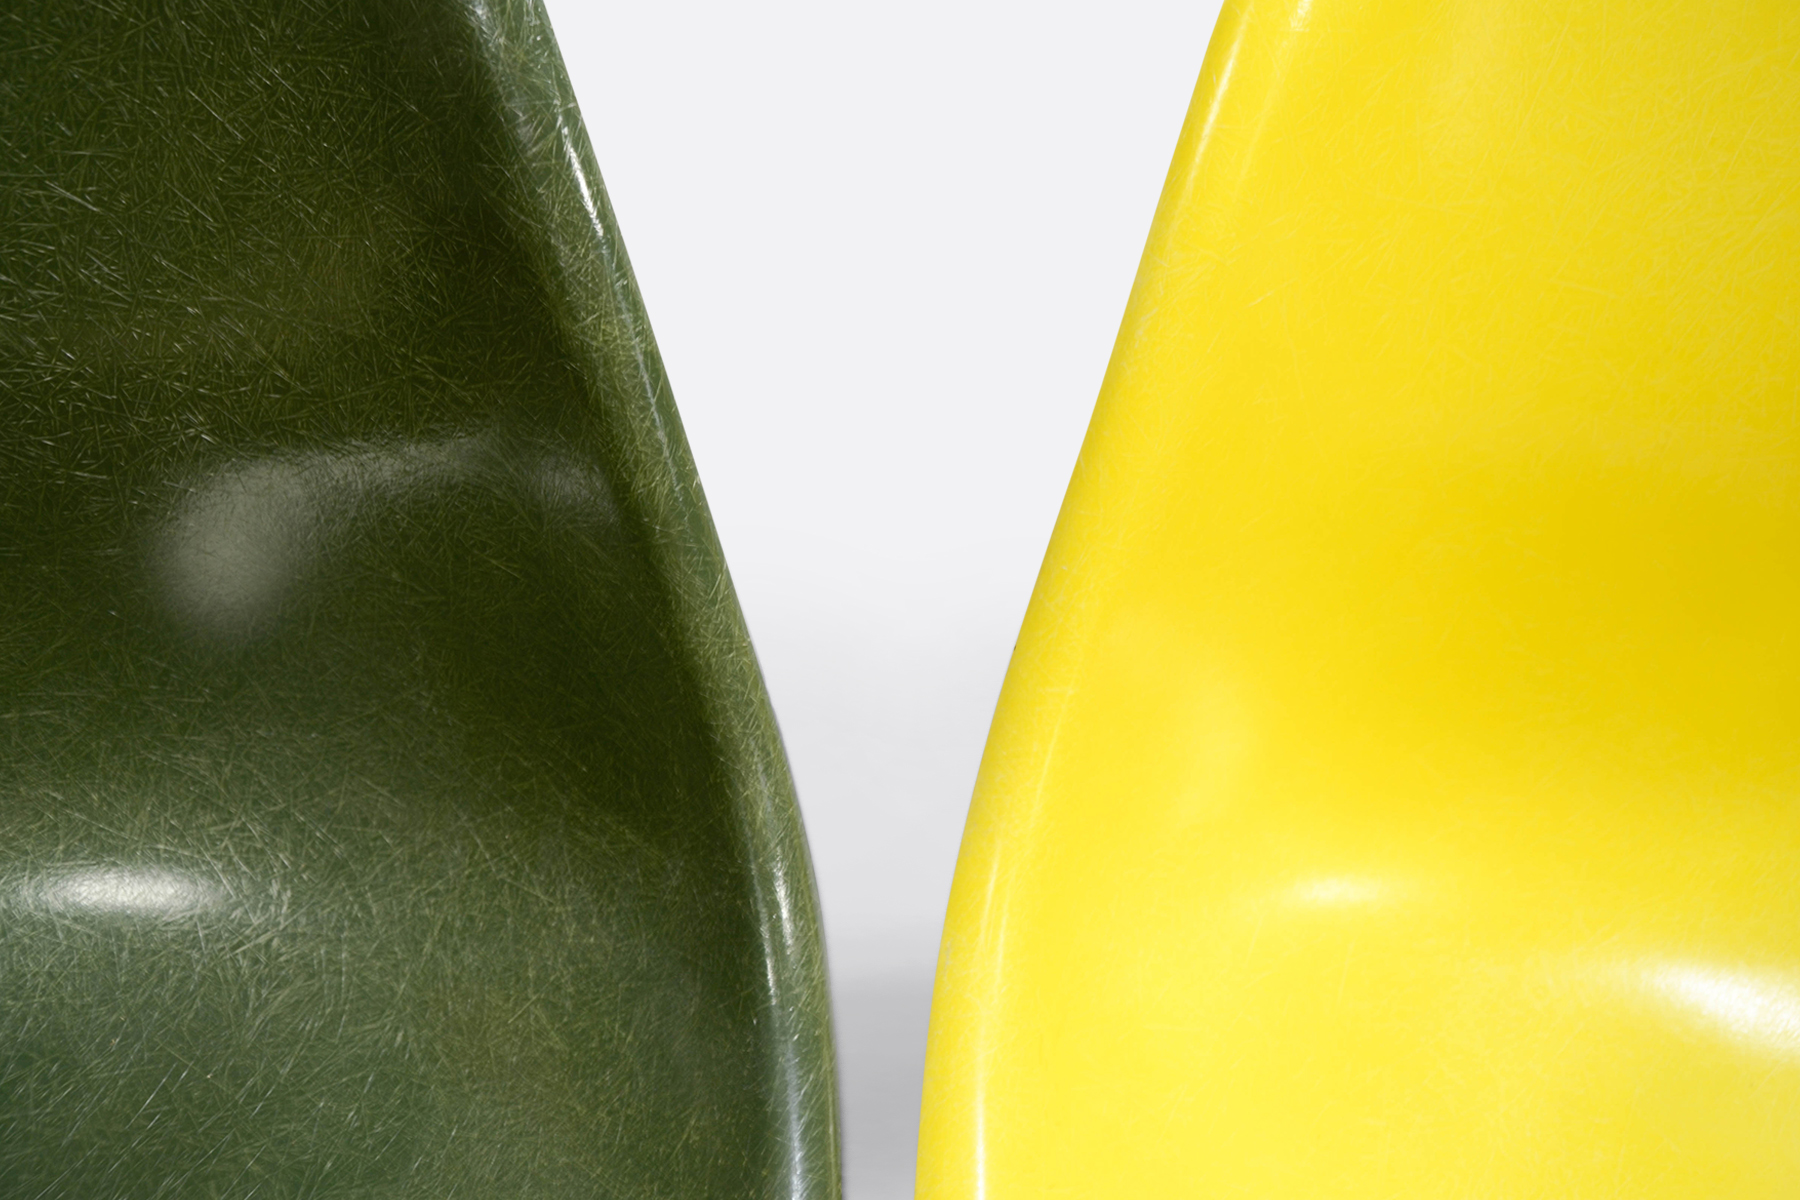 Eames DSW set of 4 Forest Green - Canary Yellow - Lemon Yellow - Off White2